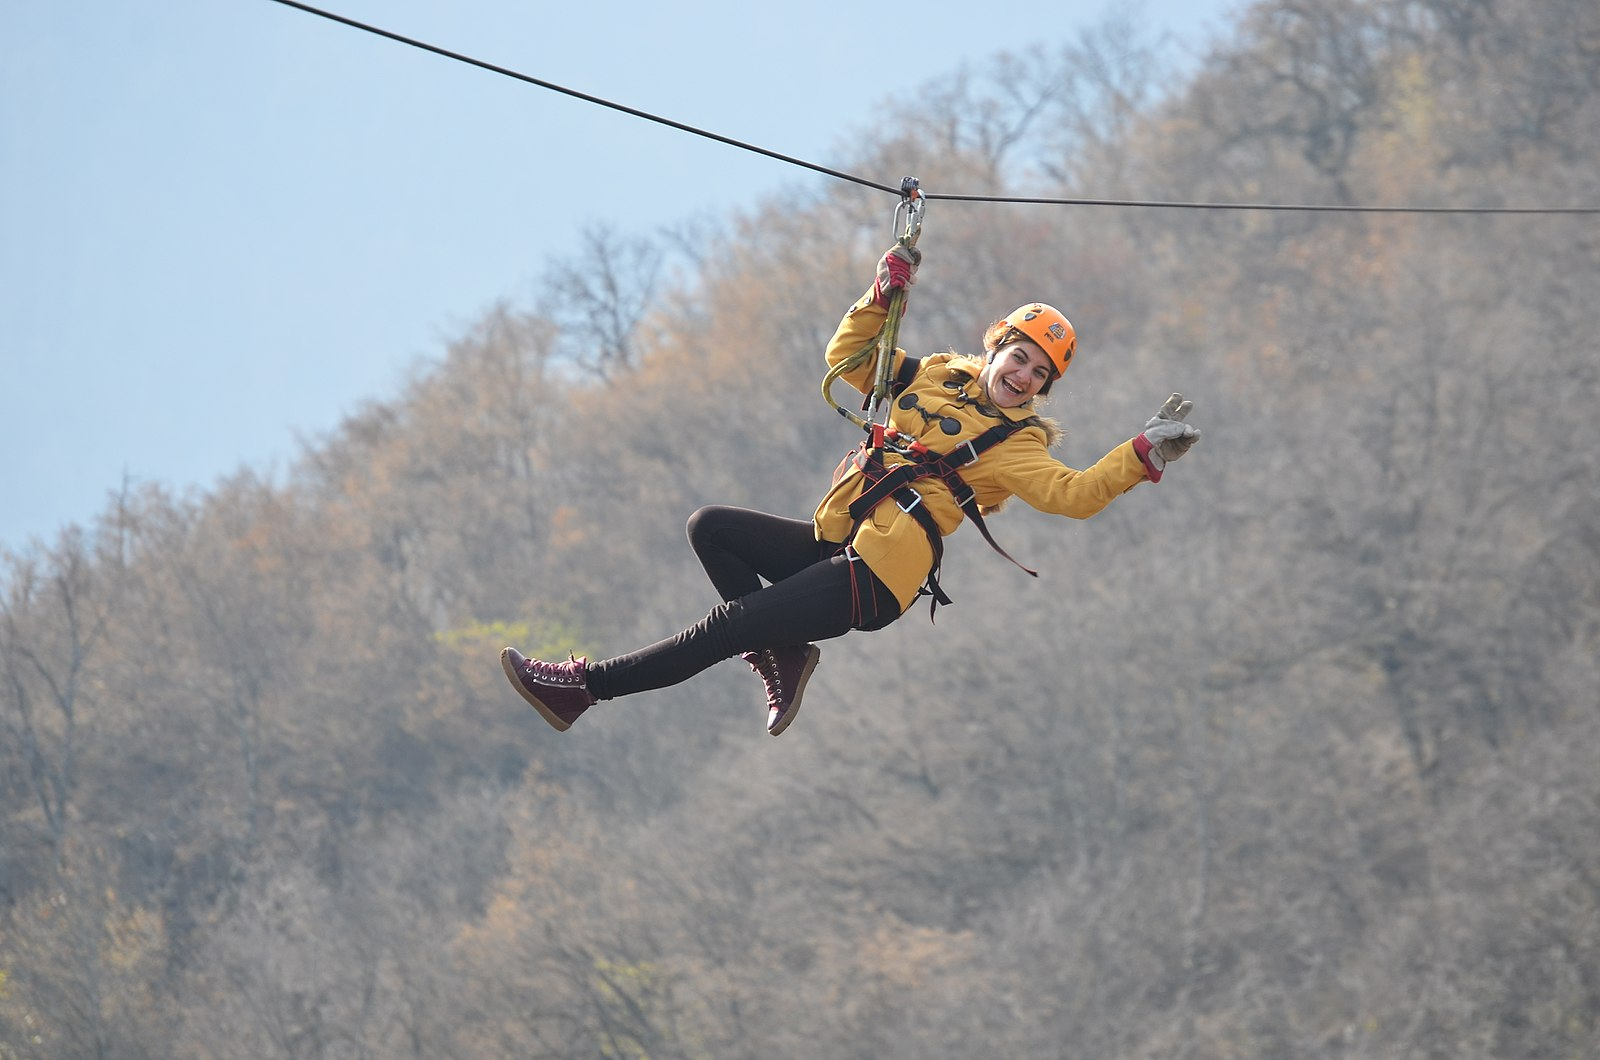 New Zipline - We are excited to announce that we will be installing a brand new zipline at Camp Wakonda this spring! We have a very generous donor who has provided $7,000 for this project. We are still in need of $3,250 to complete this project. If you would like to help fund this exciting new addition to our Summer Camp program please follow the link provided. You can also donate by mailing a check to P.O. Box 100, Fall River, WI 53932 and make the check payable to Camp Wakonda. Please note in the memo line that your donation is for the Zipline Fund.